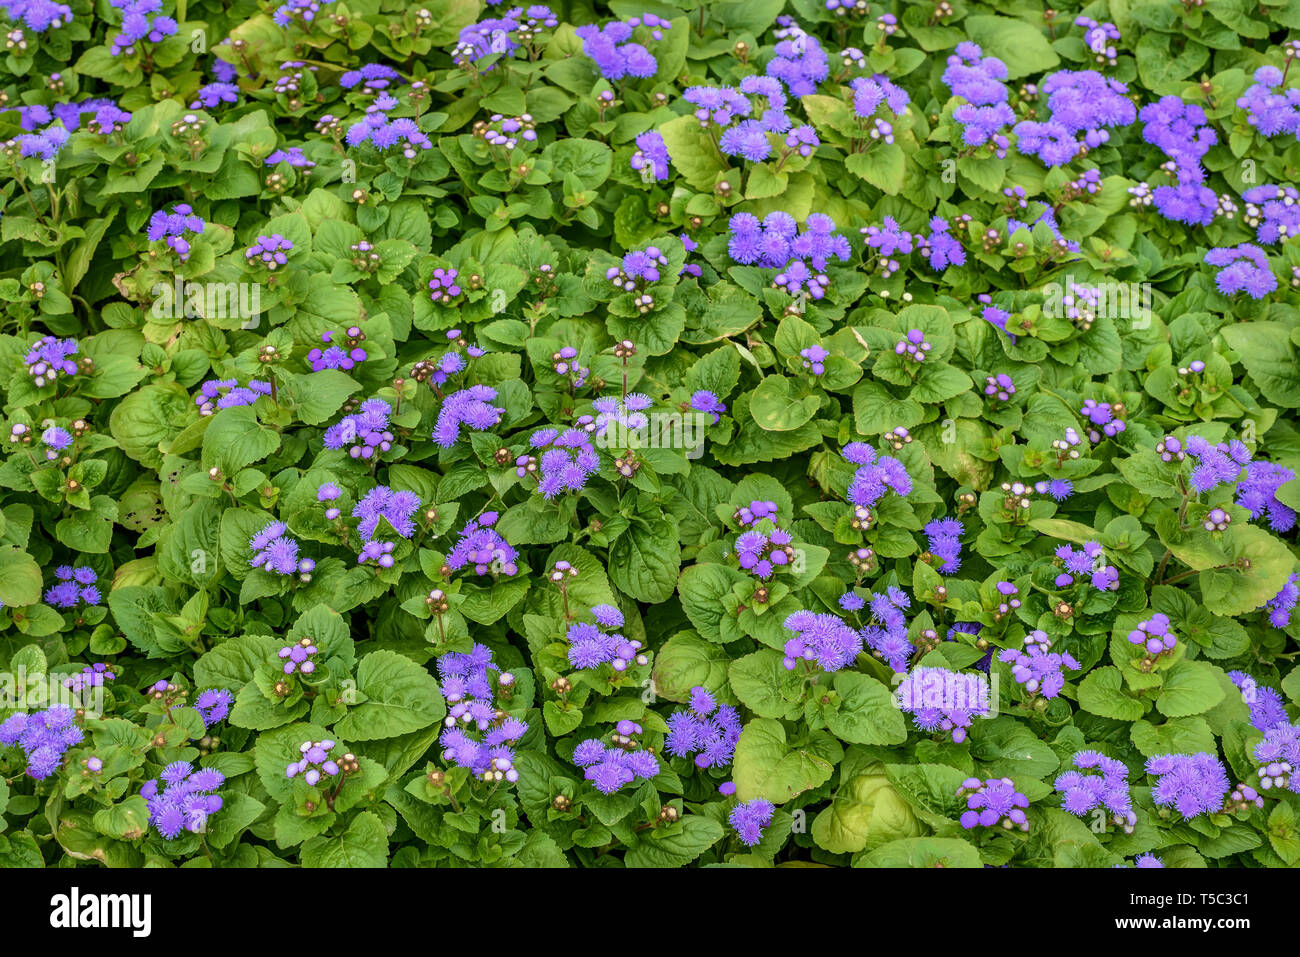 Beautiful spring floral background with delicate lilac flowers of Ageratum houstonianum aster family on a flowerbed in the park - Stock Image